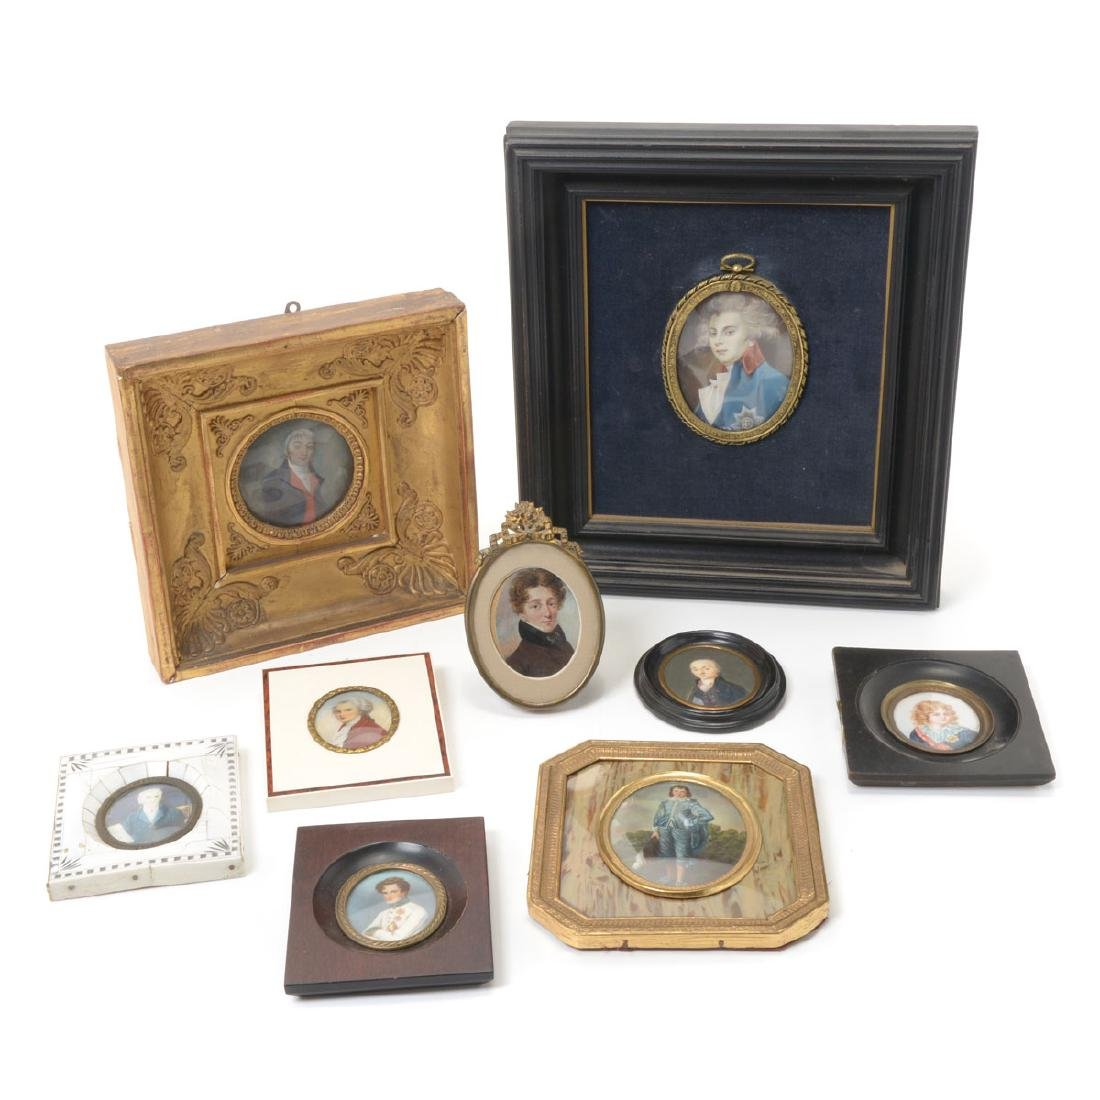 Nine Miniature Portraits of Men Including Blue Boy